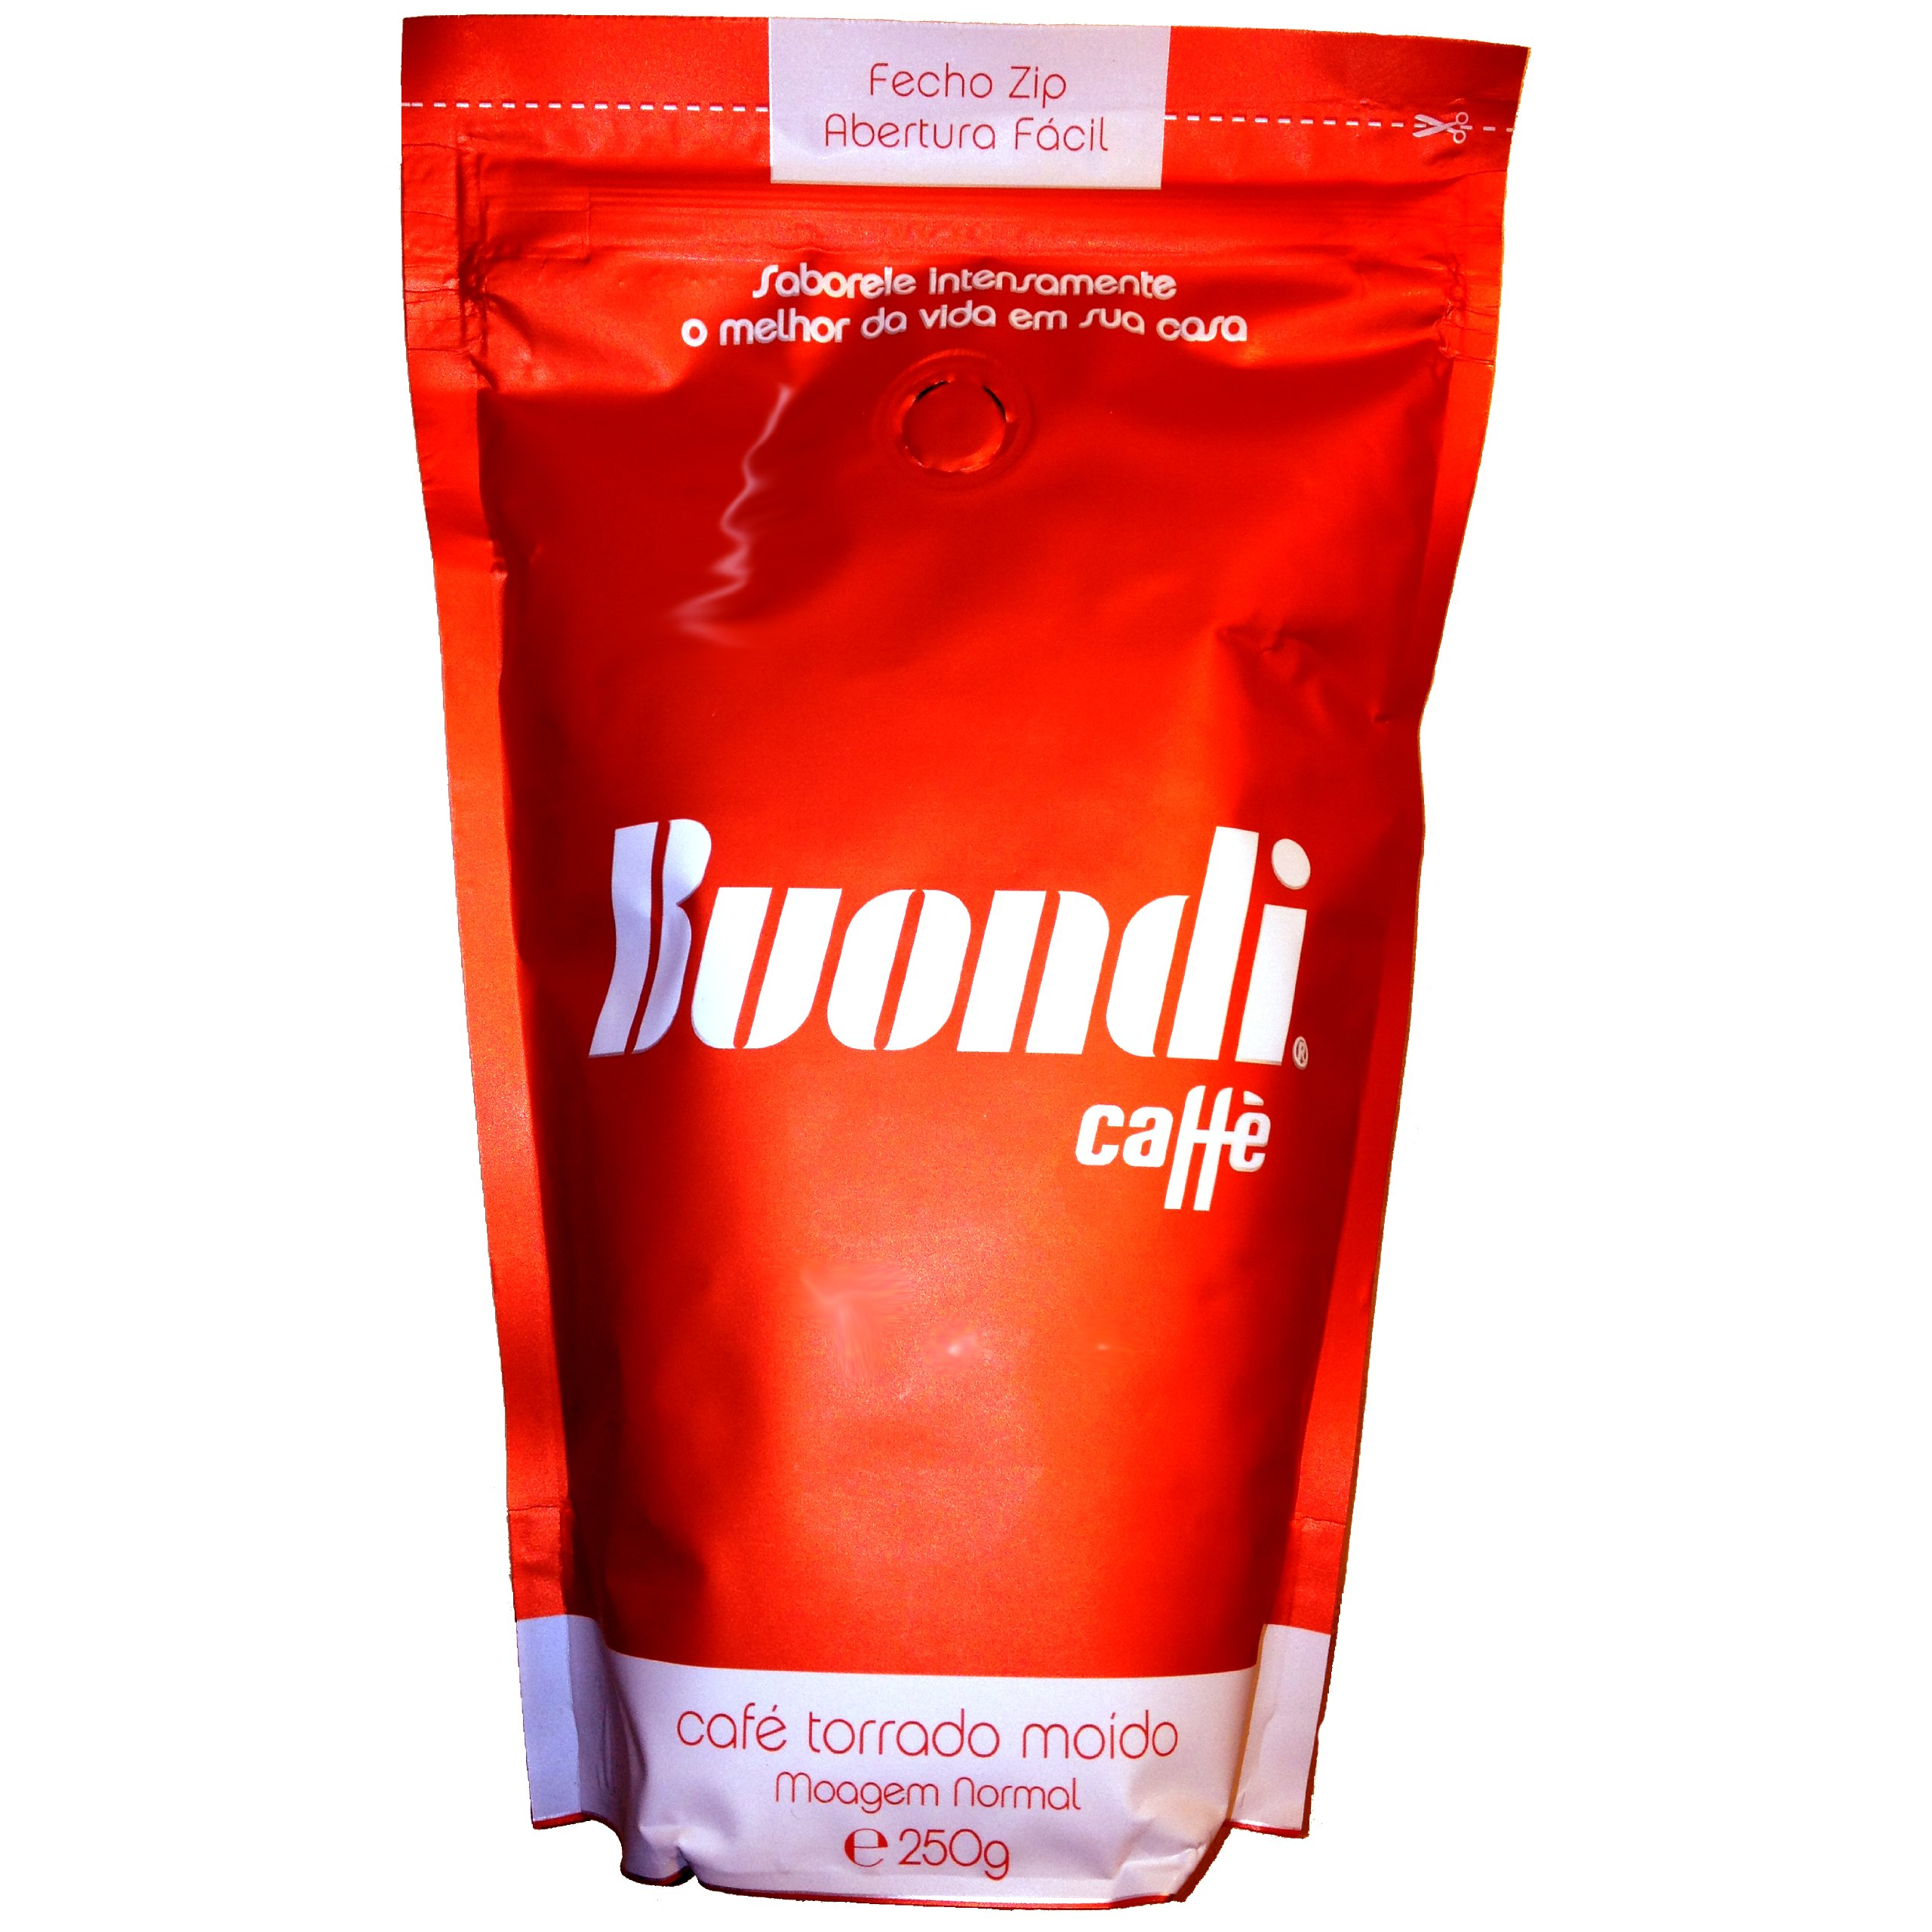 Buondi Roasted Ground Portuguese Coffee 250g